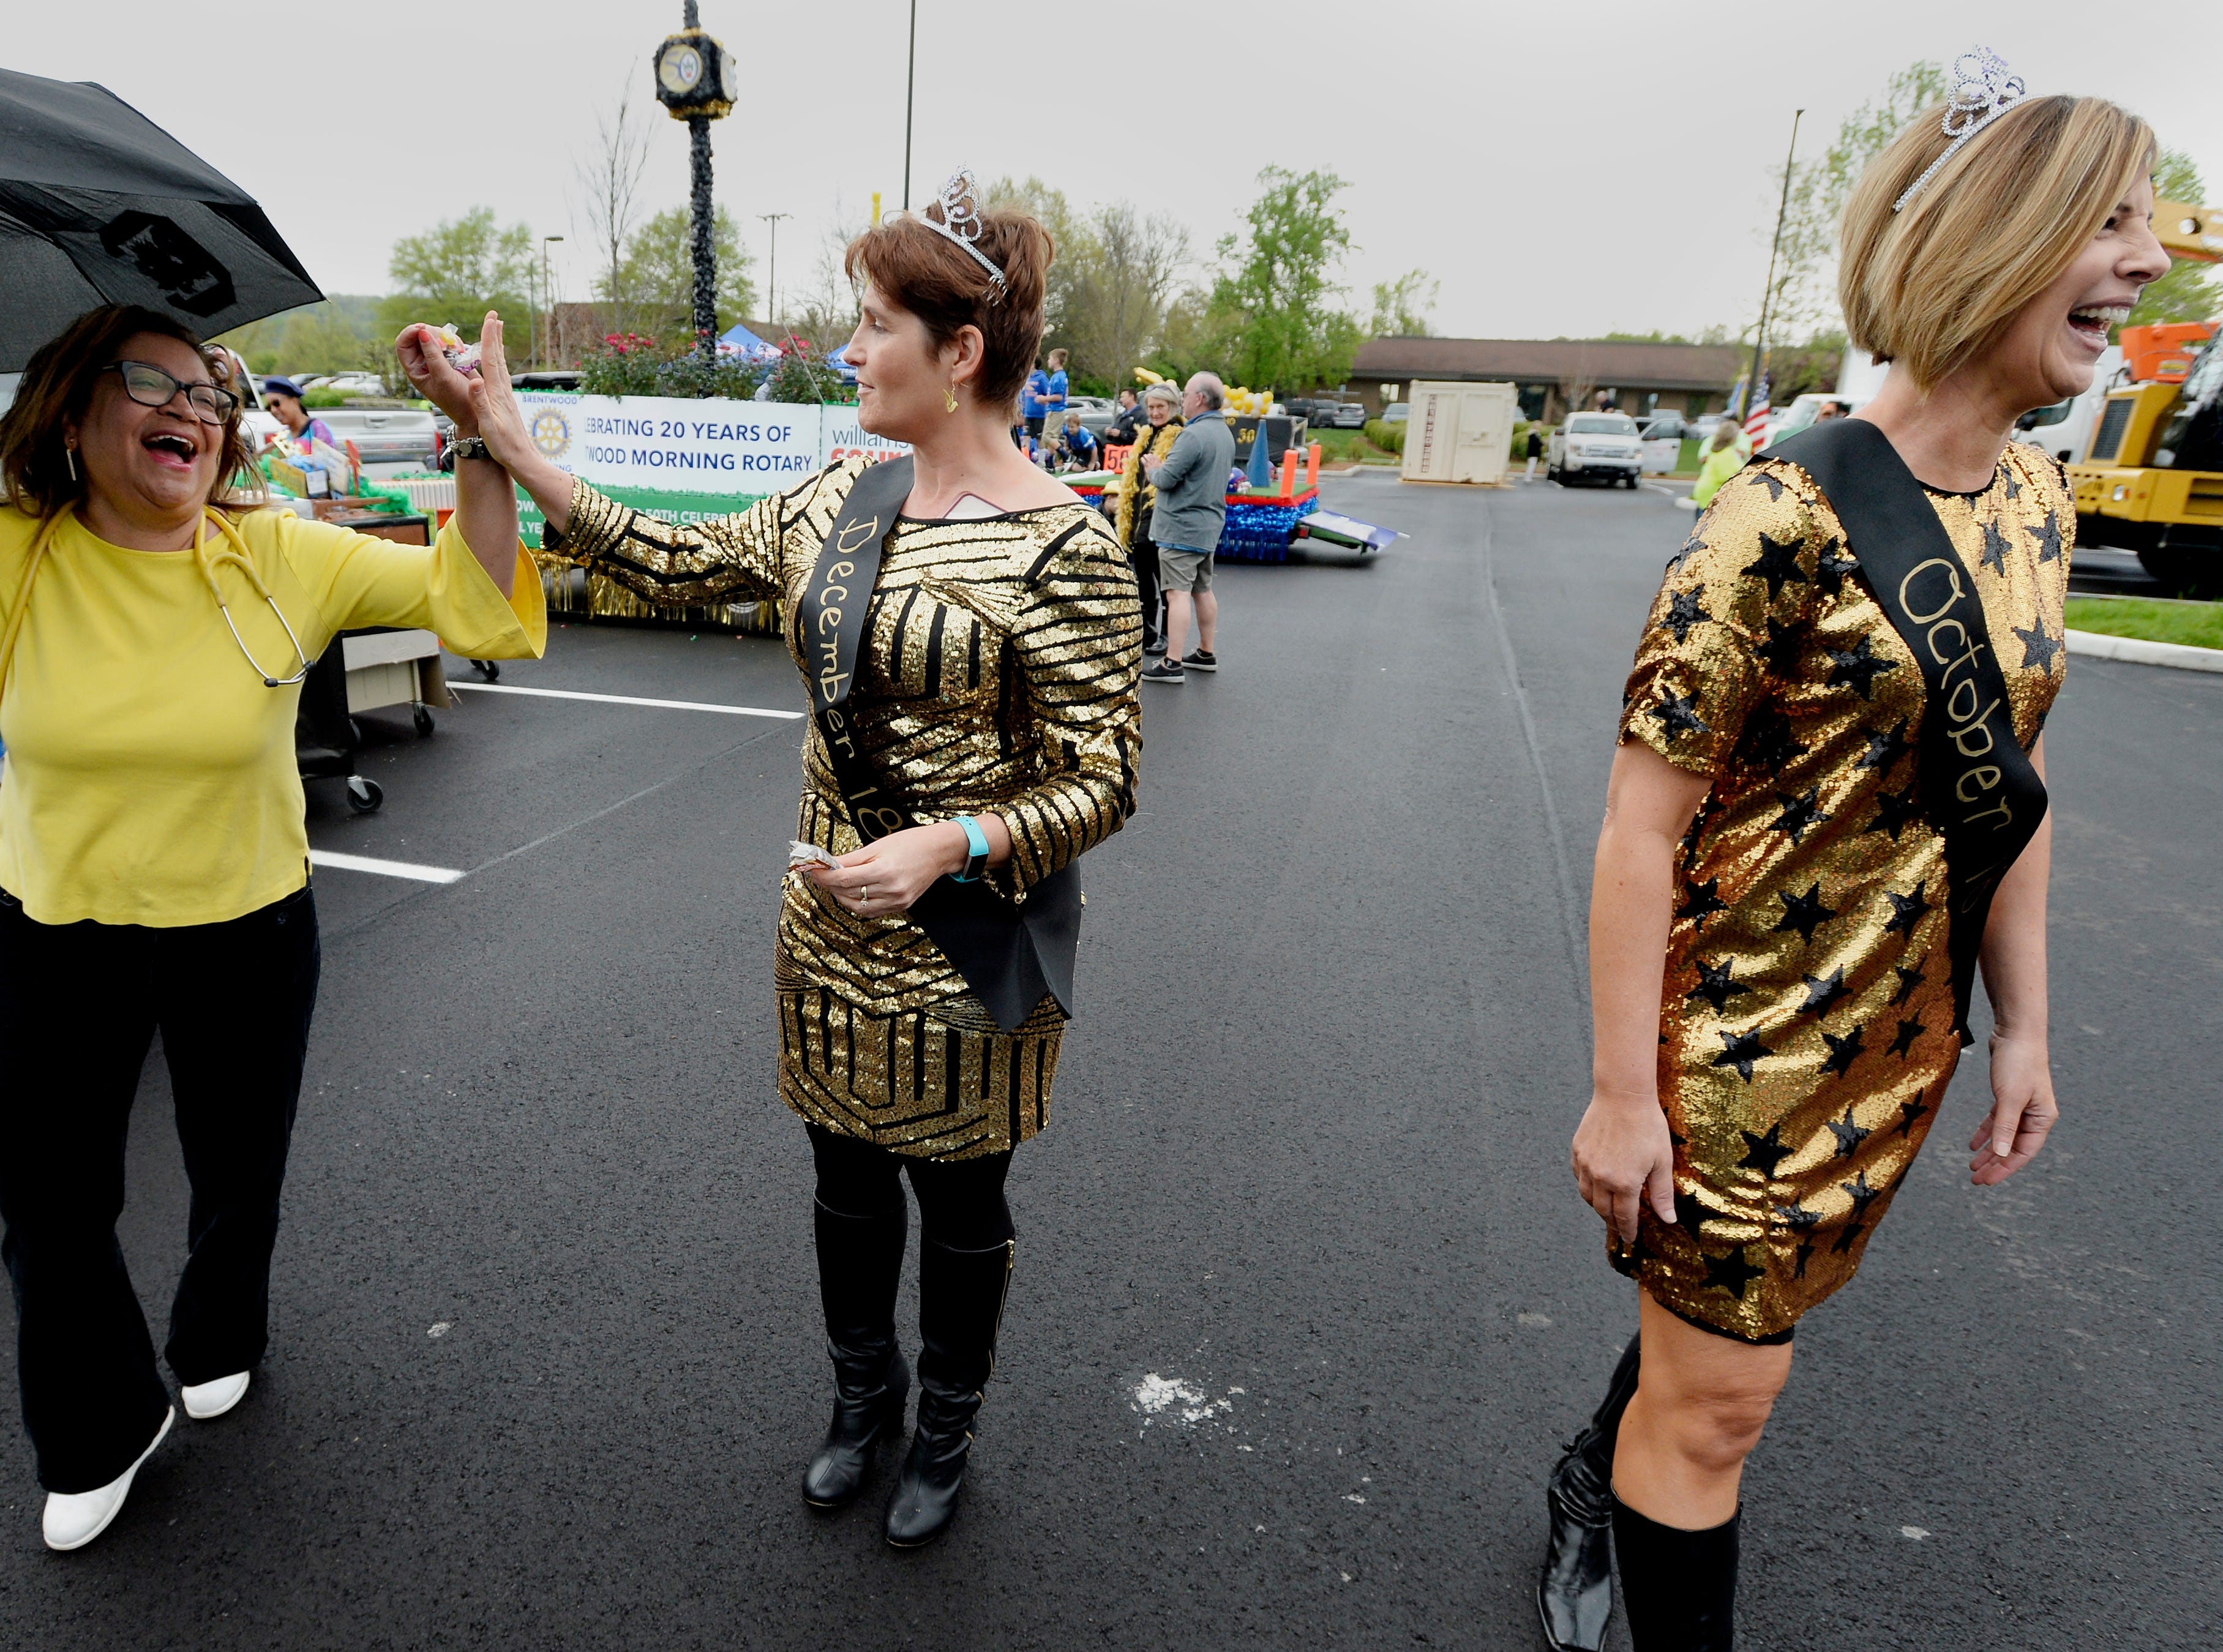 """Stacy Elliott, center, Melissa Oliver, right, and Nedra Jackson joke around before the start of Brentwood's """"A Golden Gallop"""" parade celebrating its 50th year as a community on Saturday, April 13, 2019, in Brentwood, Tenn."""